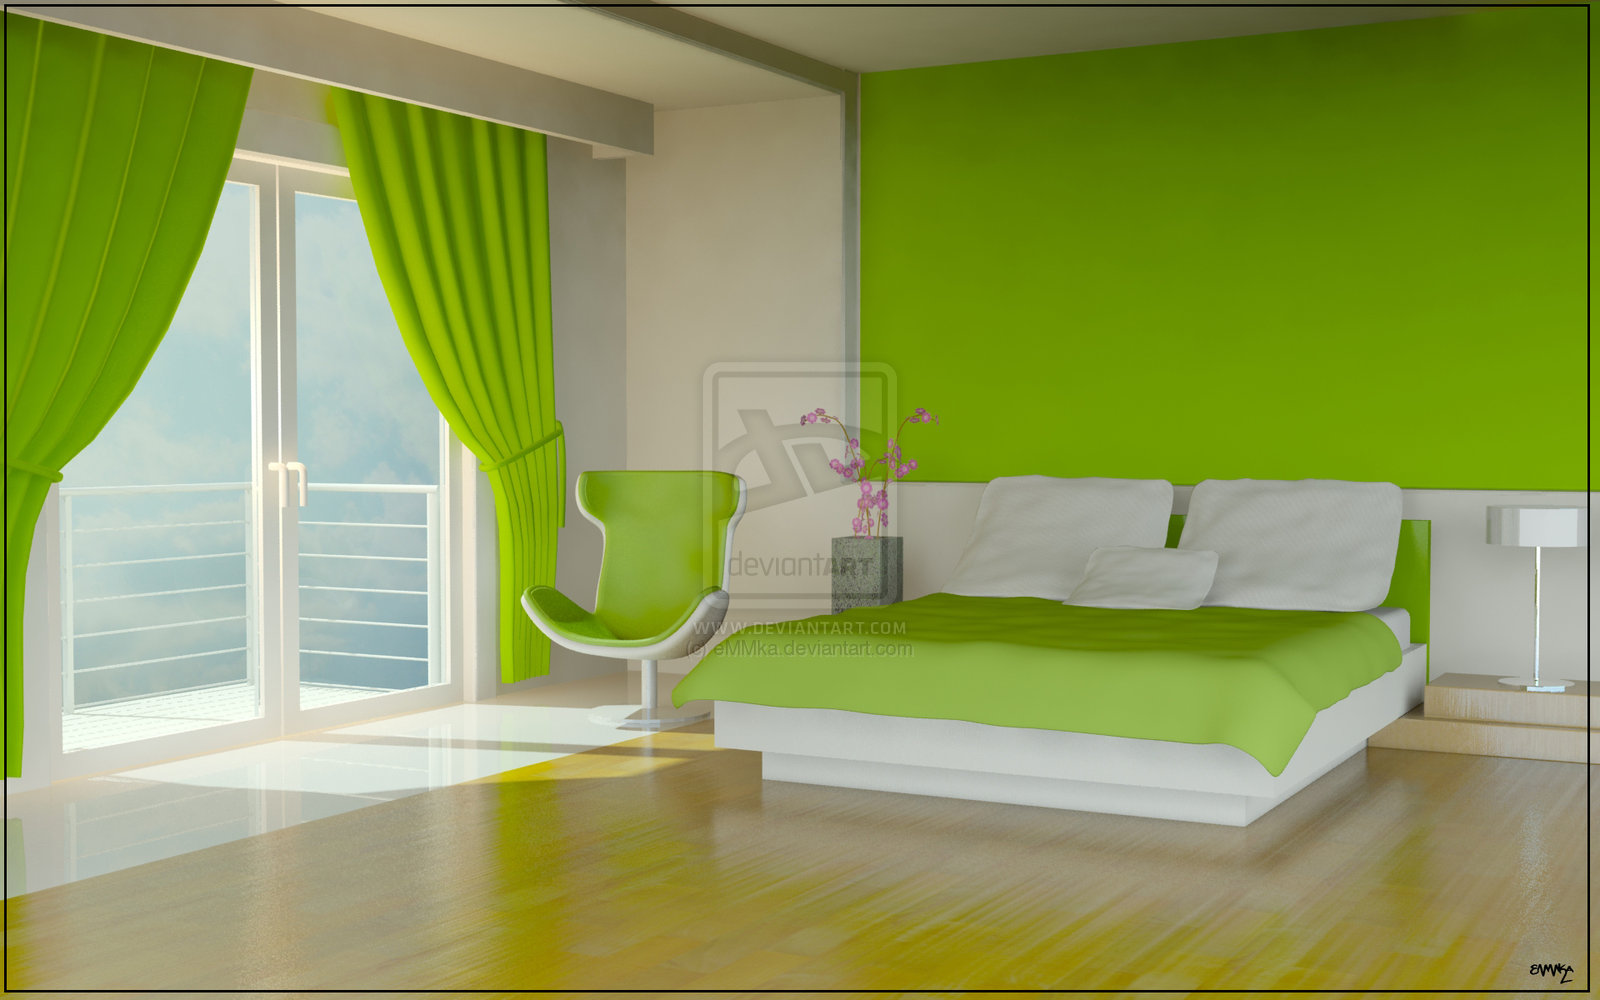 Green color bedrooms interior design ideas interior for Green interior designs